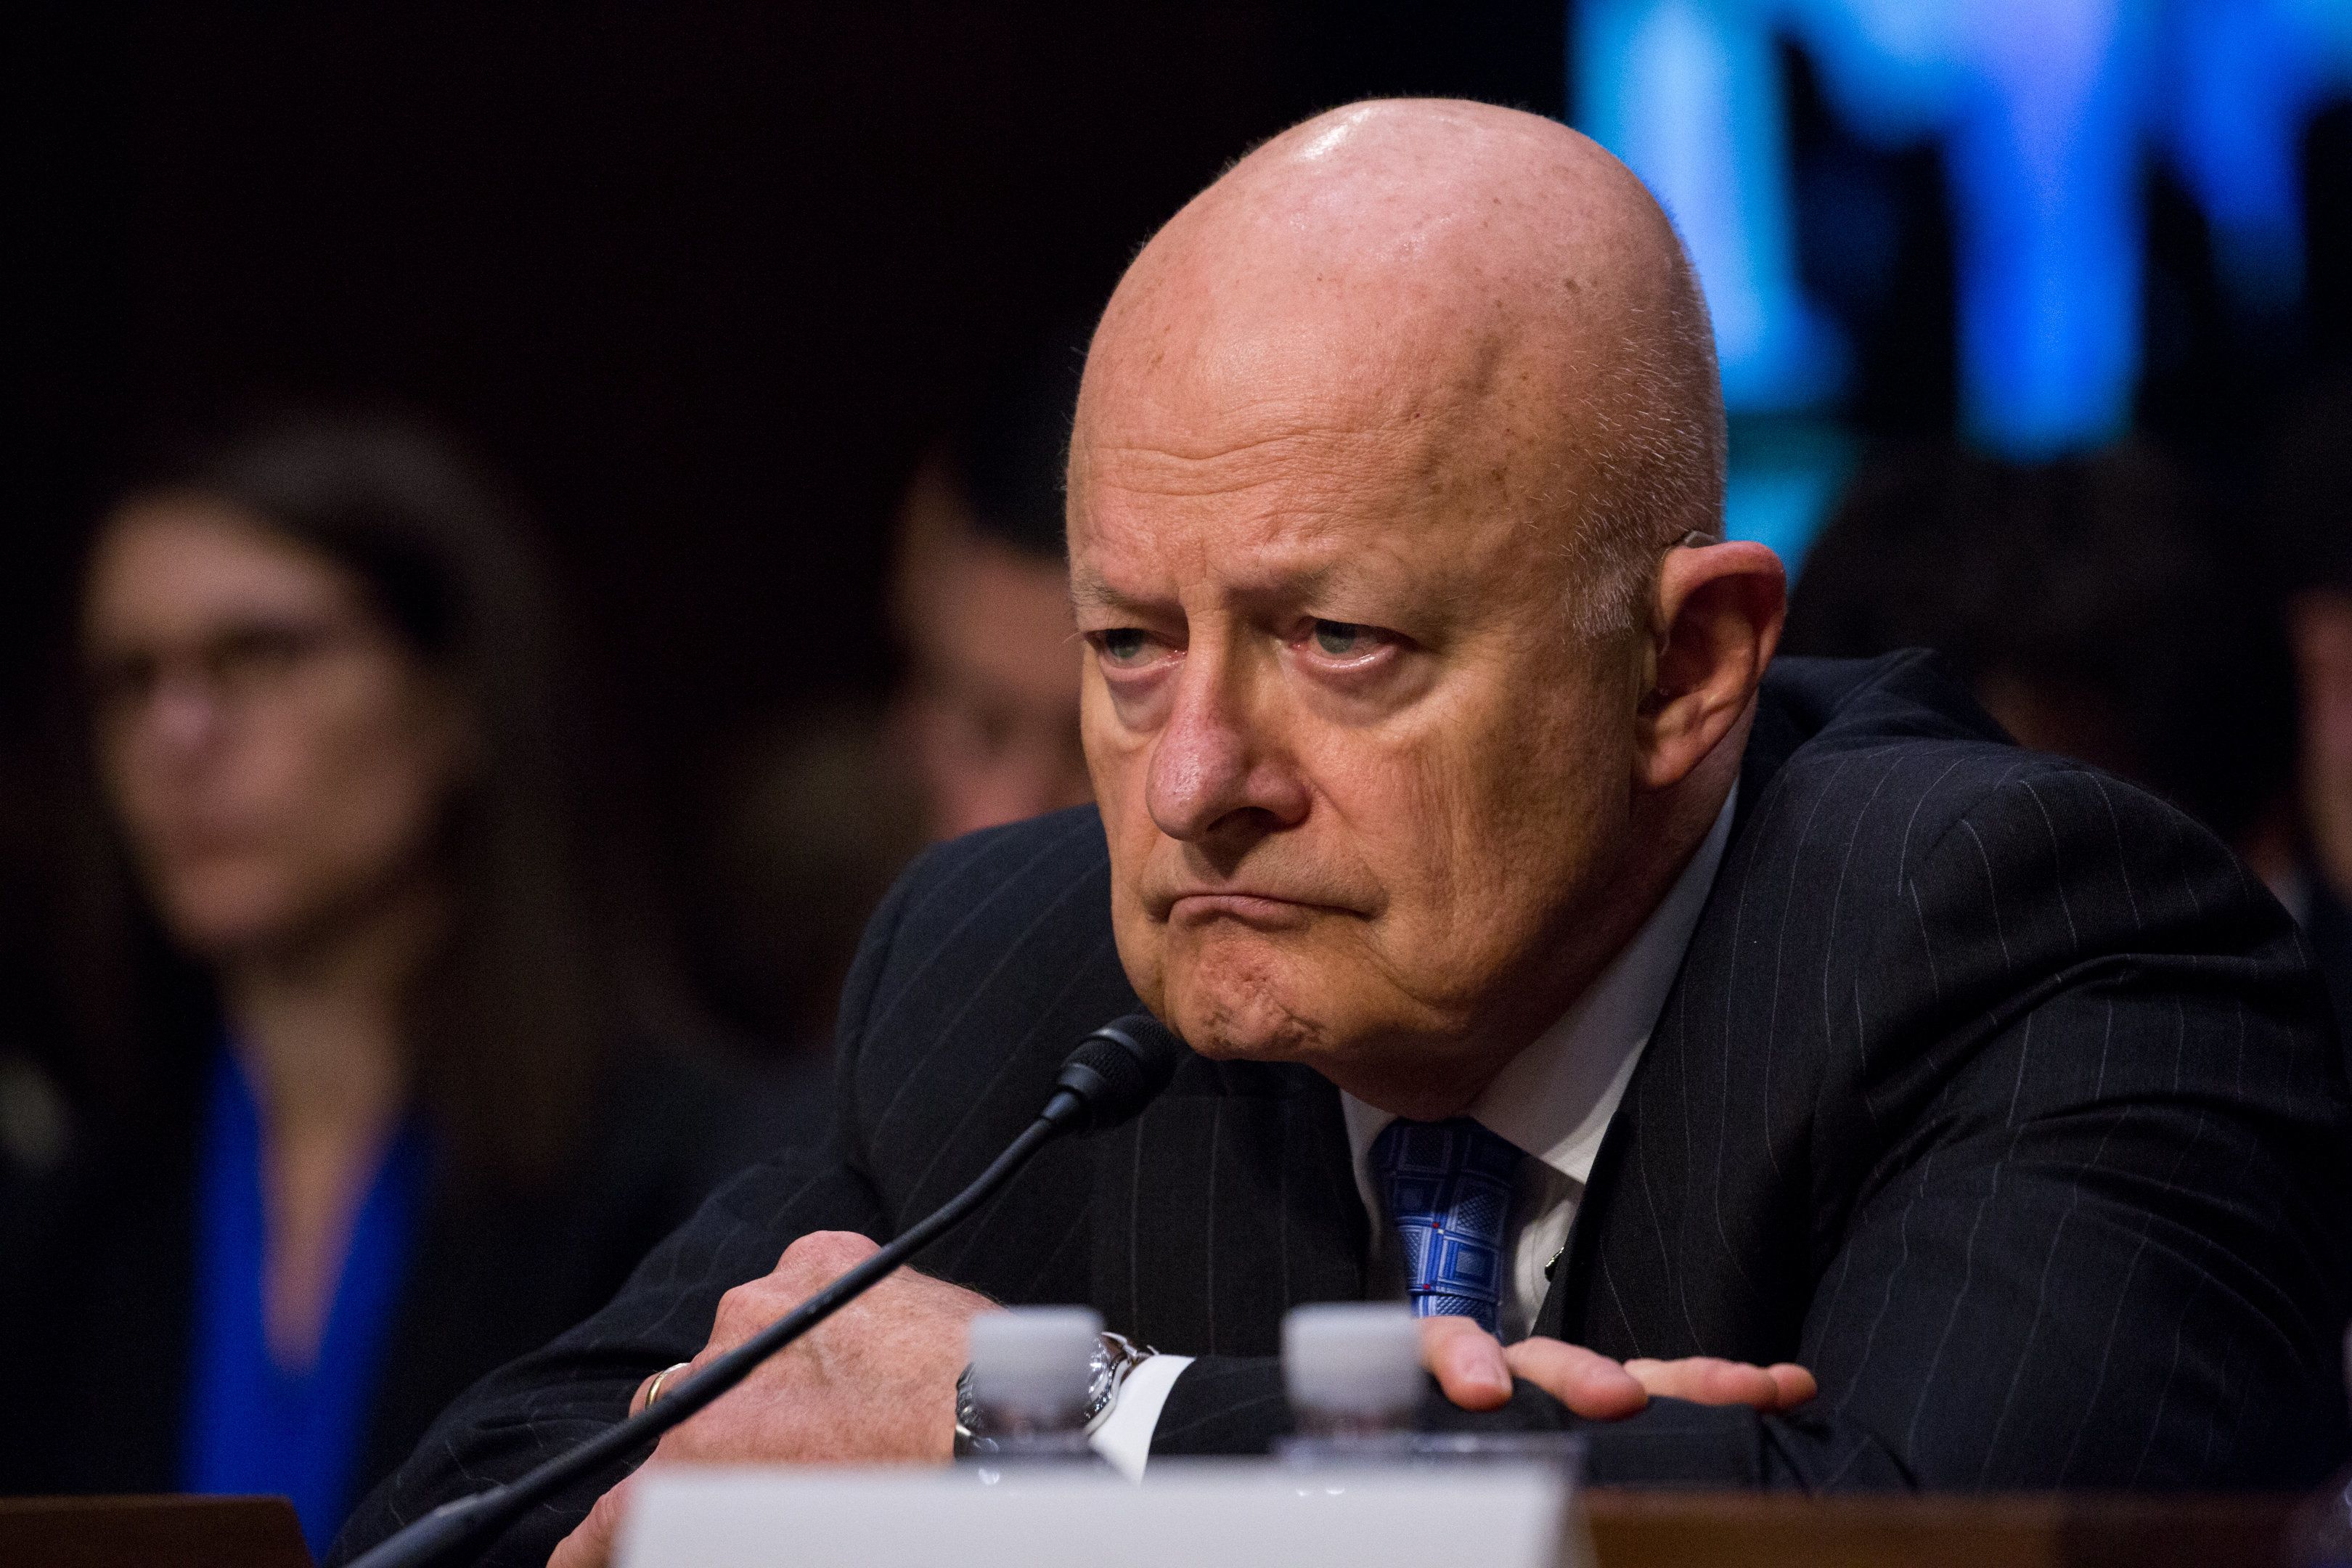 The Honorable James R. Clapper, Former Director of National Intelligence of the U.S., testifies before The Senate Judiciary Committee on Russian Interference in the 2016 United States Election,  in the Senate Hart building on Capitol Hill, on Monday, May 8th, 2017. (Photo by Cheriss May) (Photo by Cheriss May/NurPhoto via Getty Images)